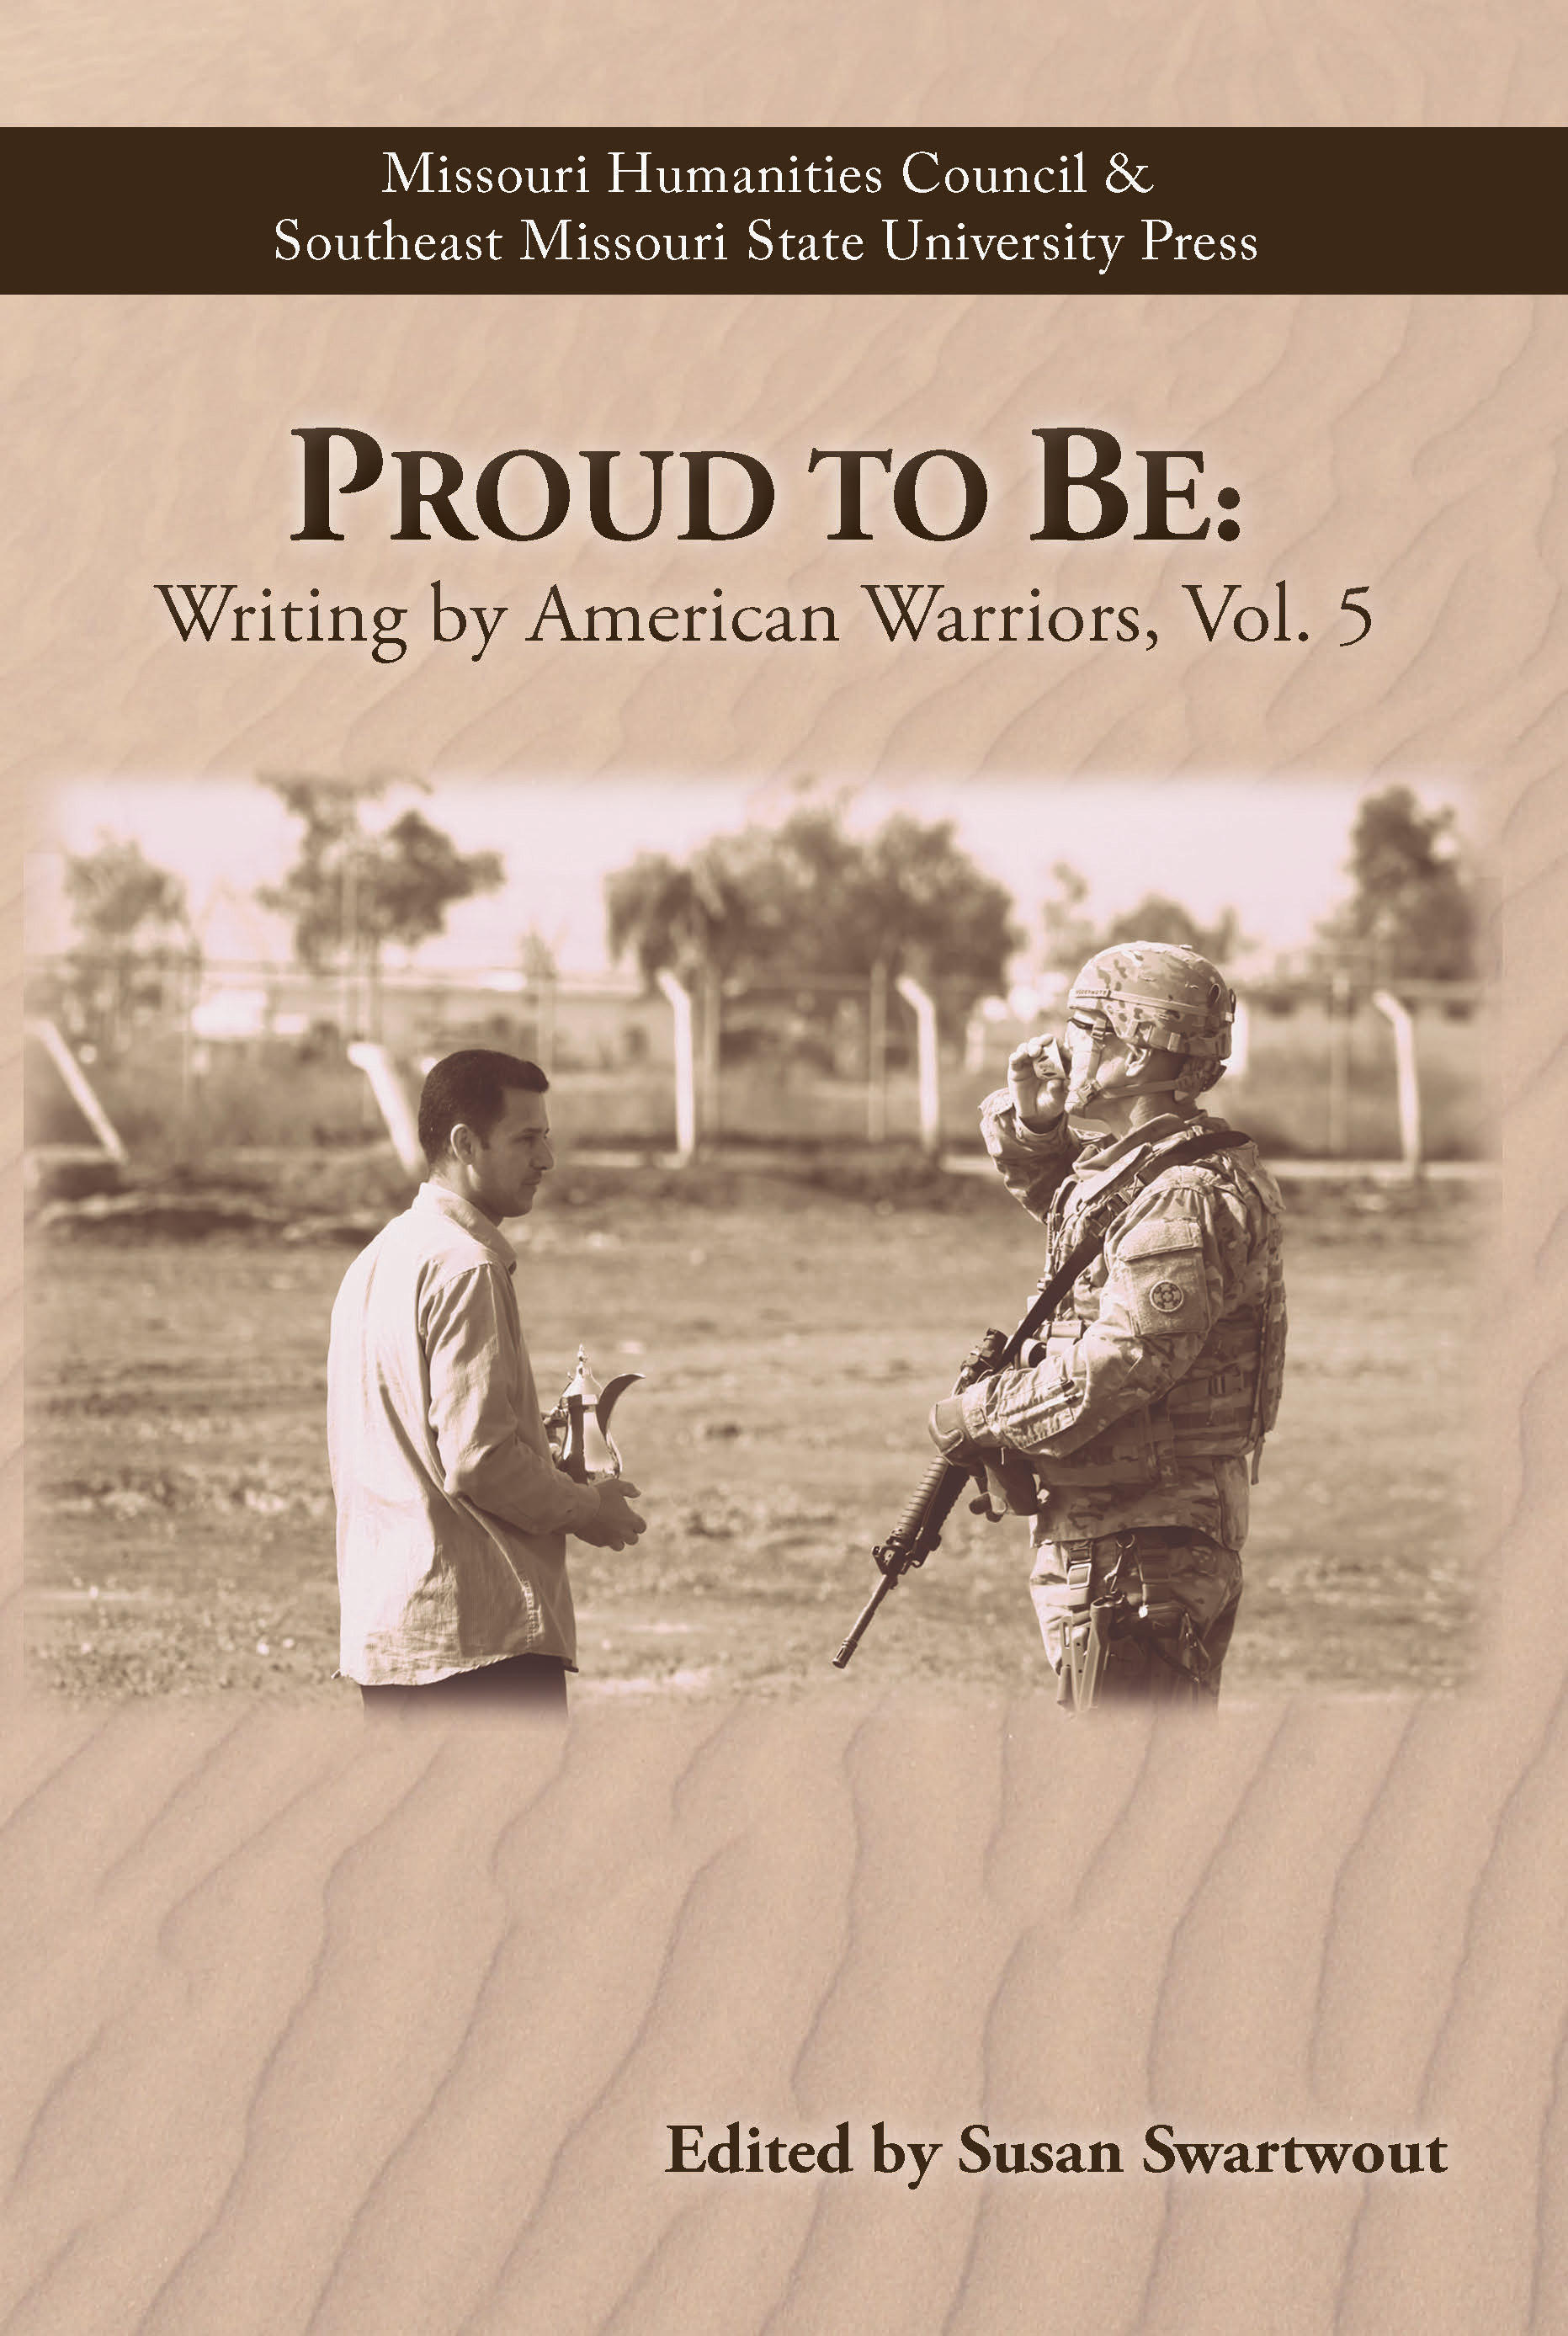 veterans tell their stories and heal in books from southeast volume 5 of the anthology about 250 pages of essays stories interviews poems and photos by veterans and their family members from all across the